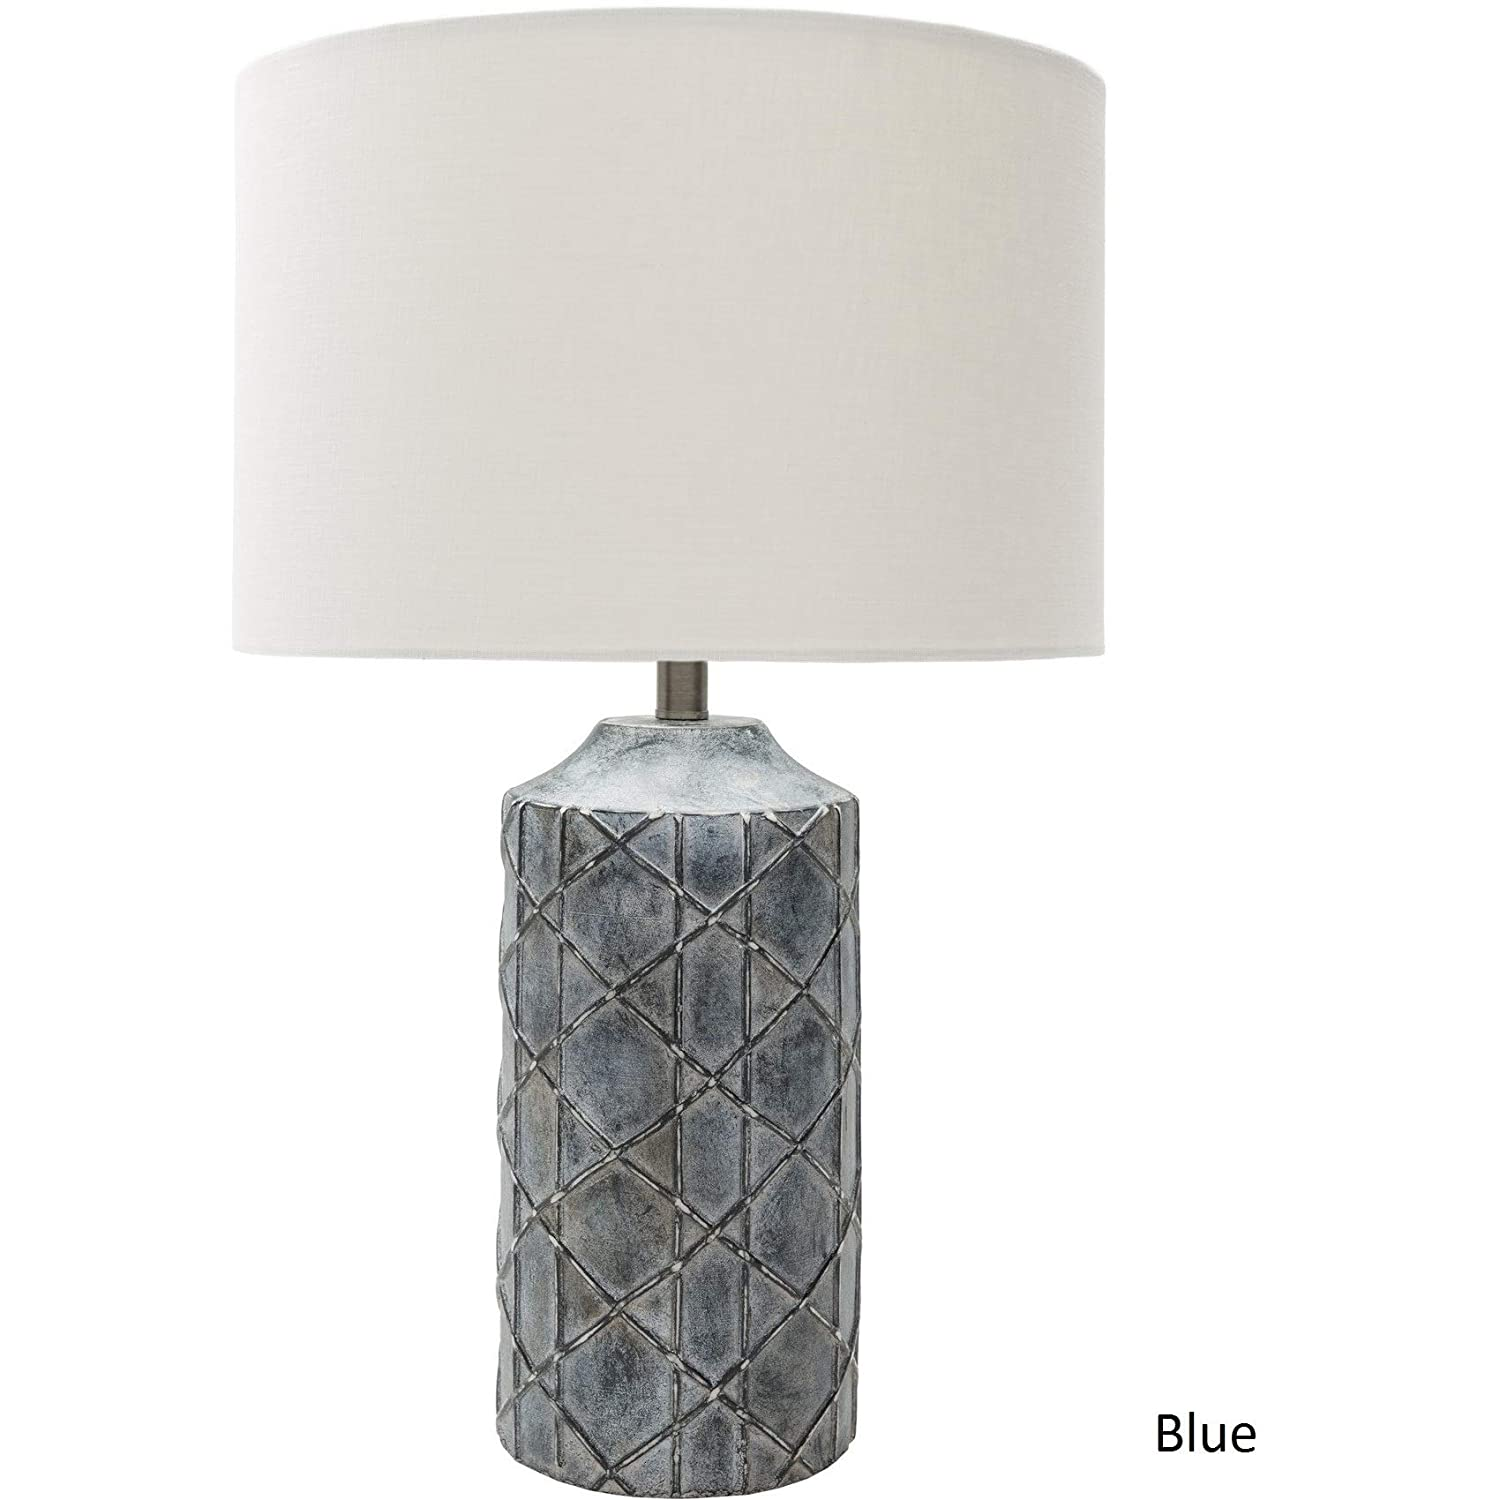 The Gray Barn Red Sky Antique Resin Base Table Lamp White Blue